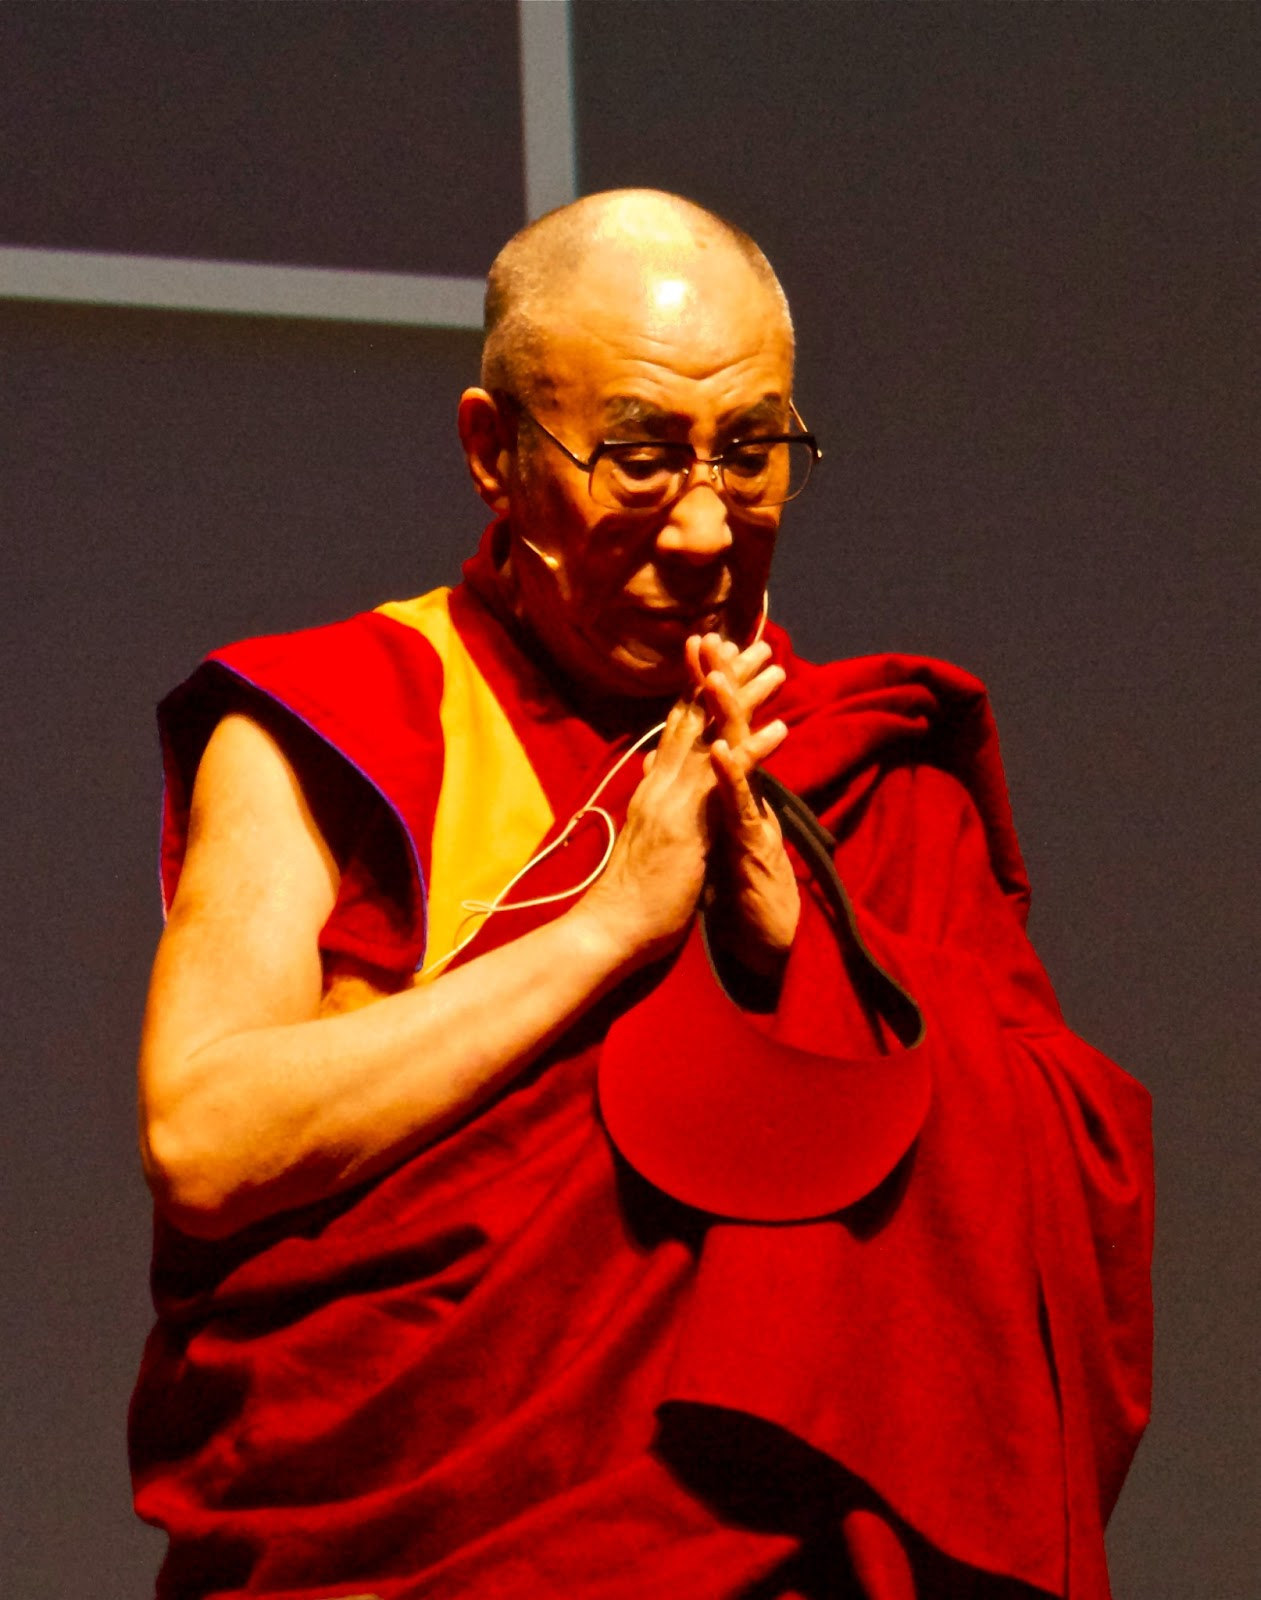 ian gawler out on a limb ian gawler blog why the dalai lama so why is it that the dalai lama respects you so much and is so confident you are so special